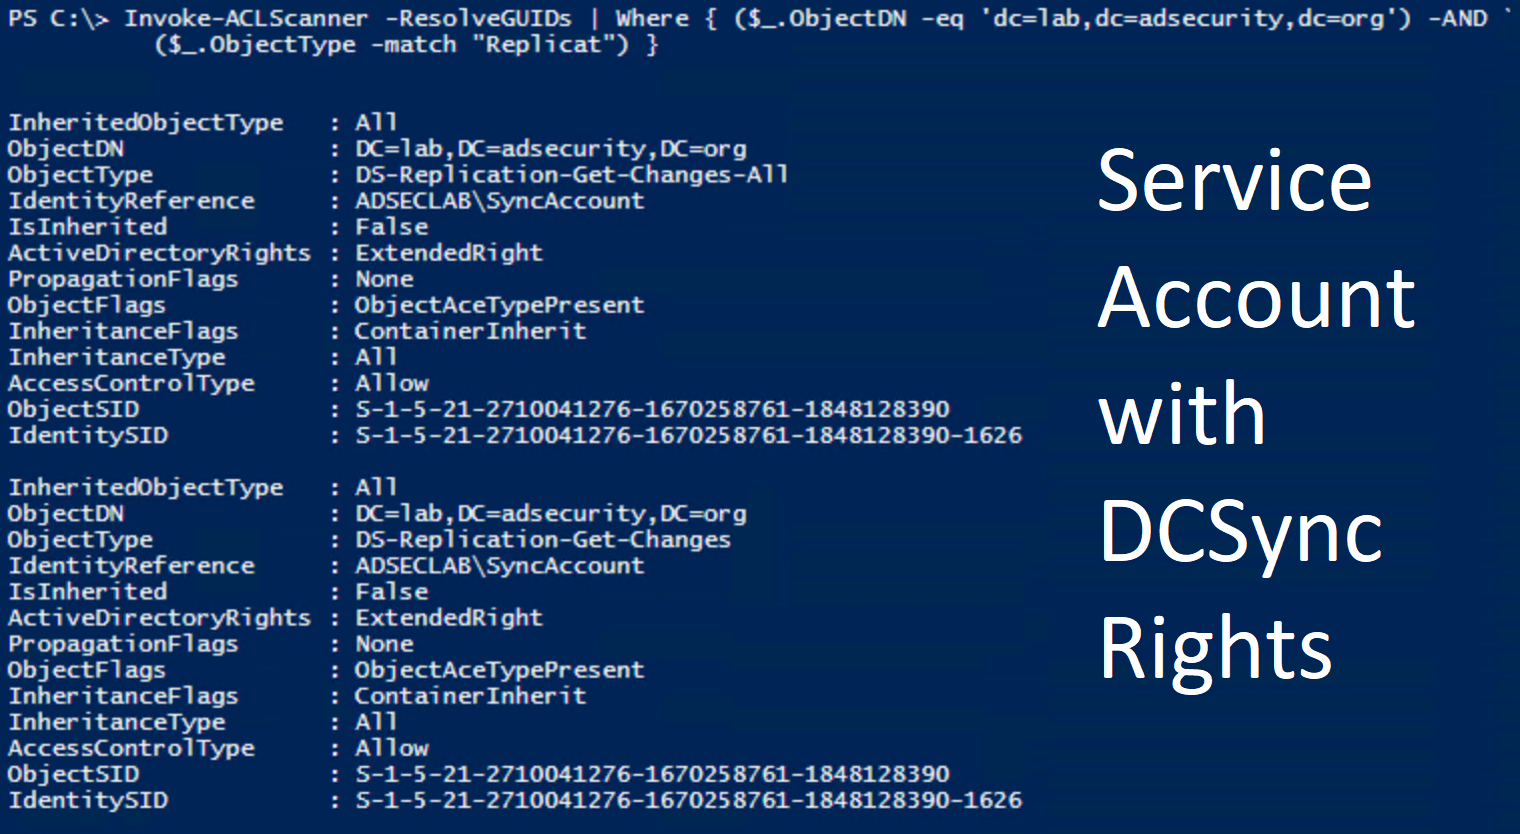 Scanning for Active Directory Privileges & Privileged Accounts